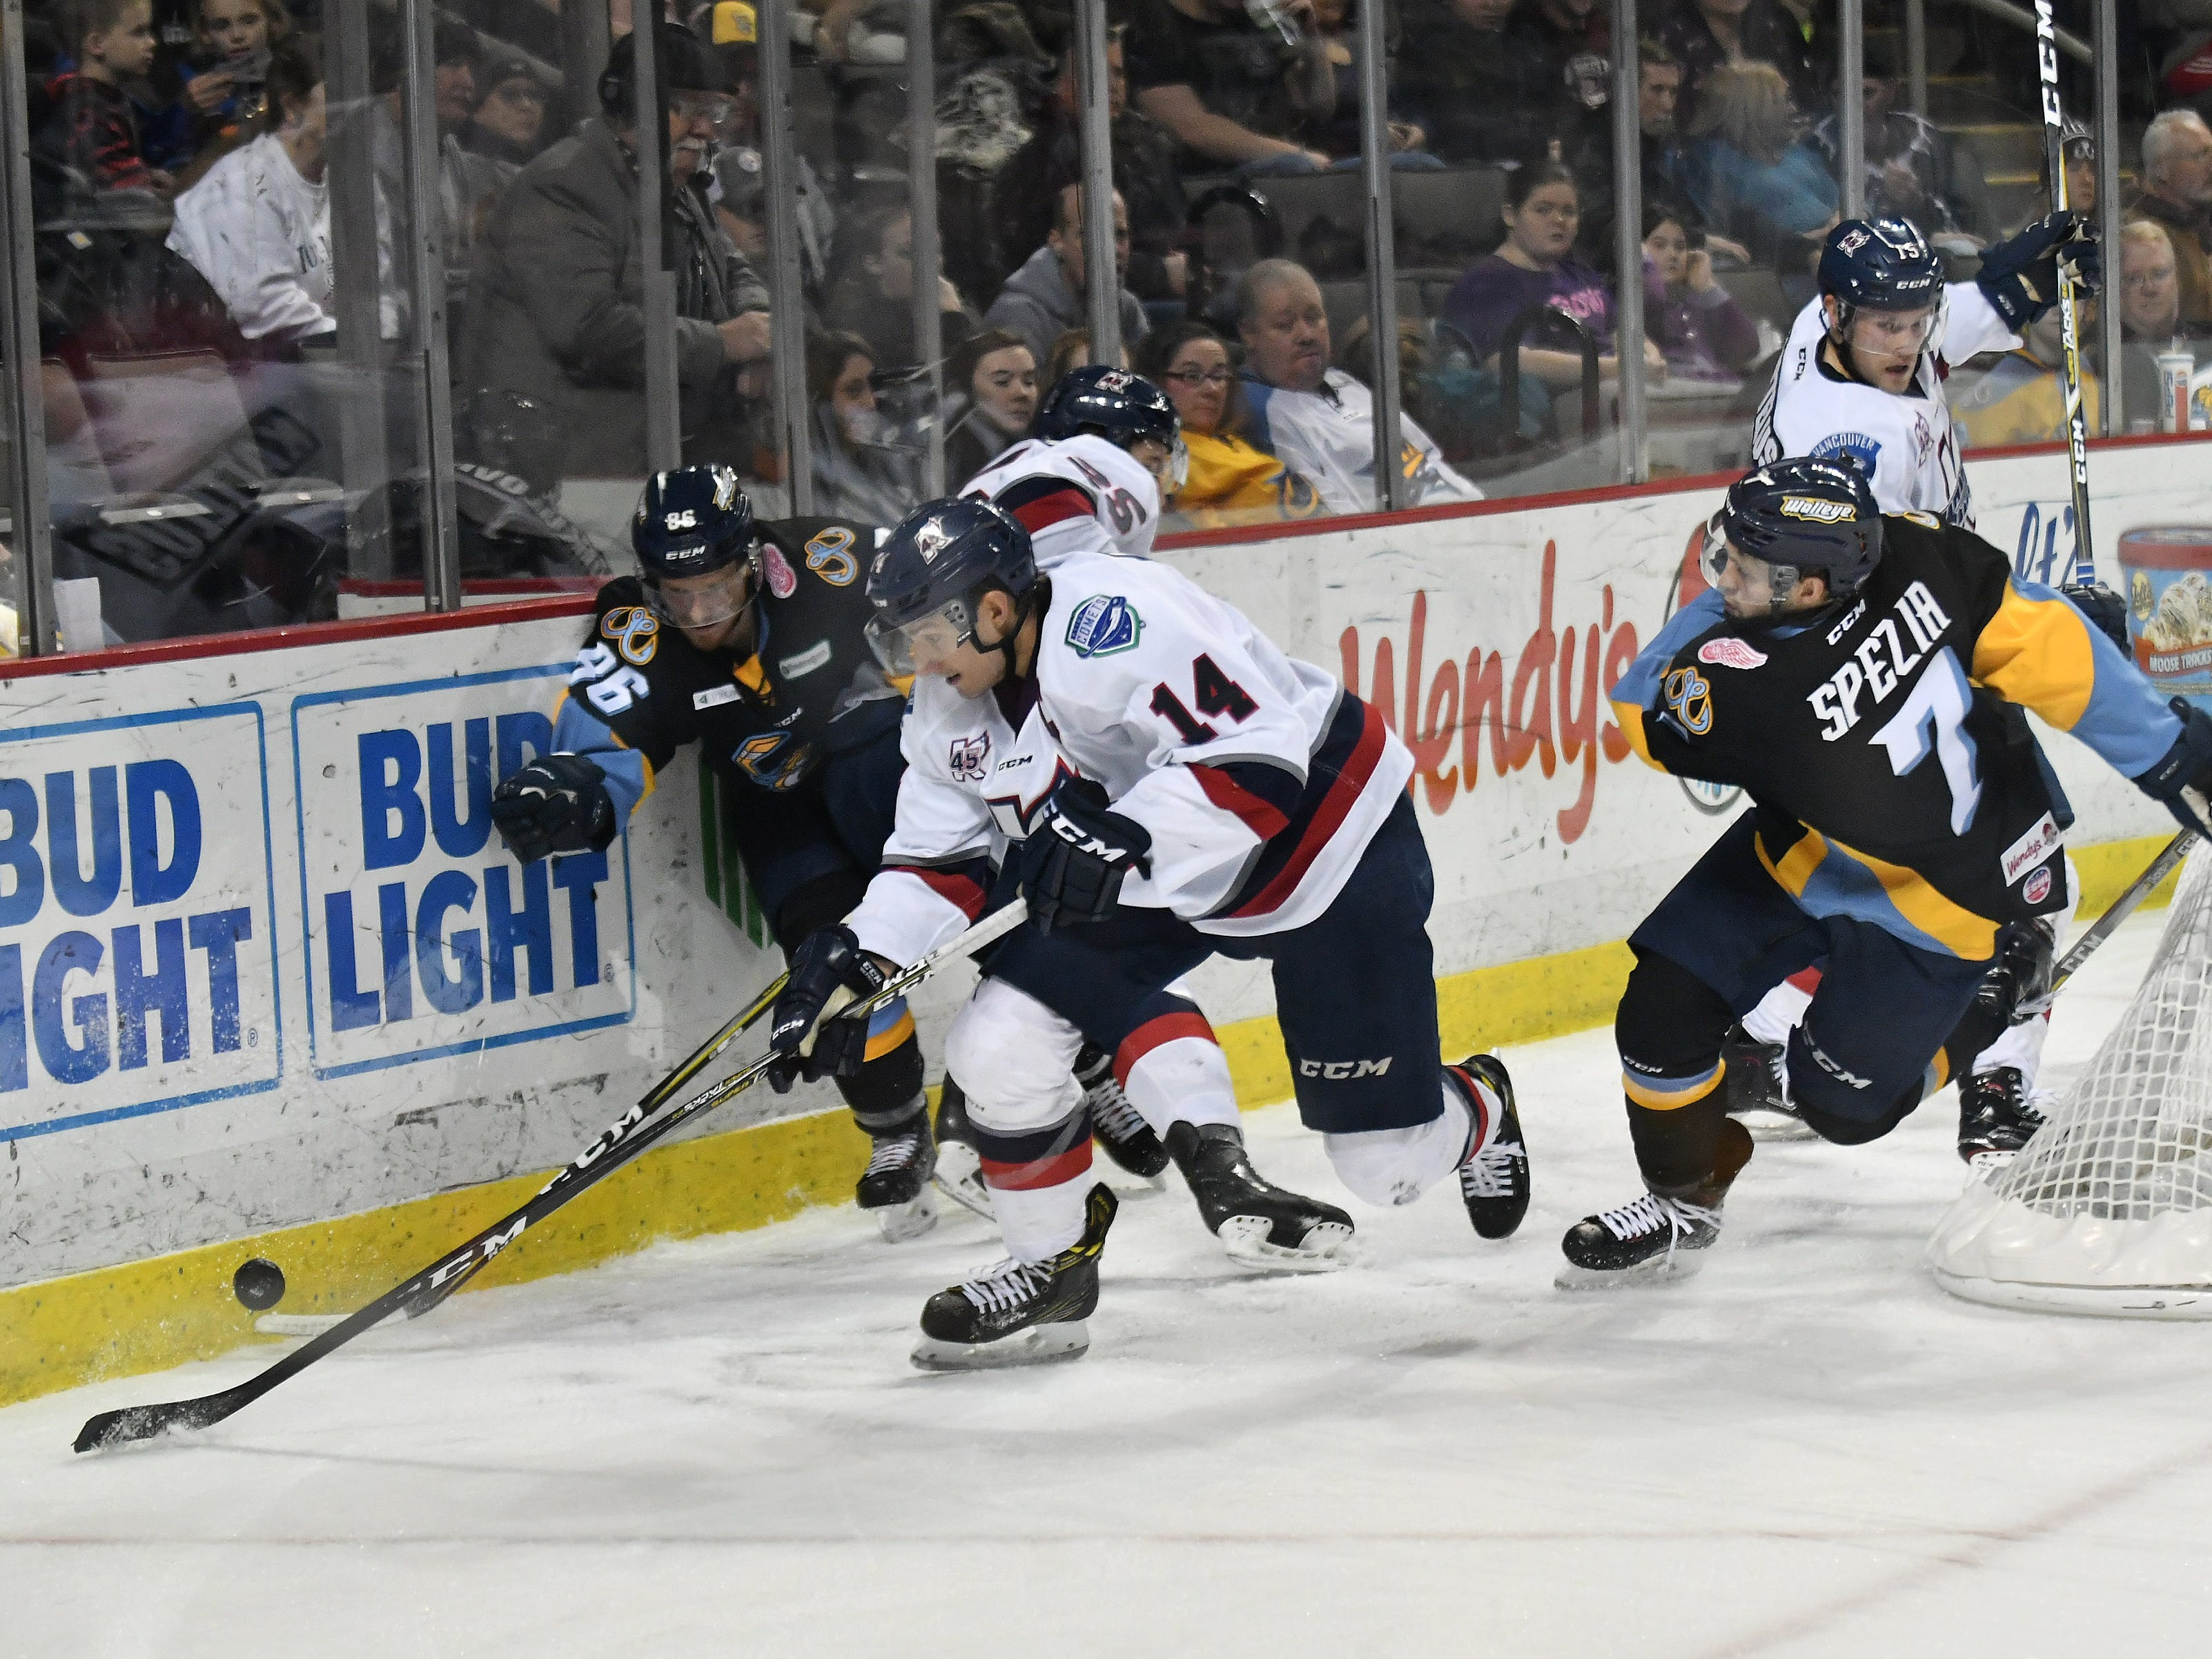 Kalamazoo defenseman Ben Wilson (14) tries to get to the puck while Toledo forward Greg Wolfe (86) battles Kalamazoo defenseman Aleksandr Mikulovich in the second period.  At right is Toledo forward Tyler Spezia (7).